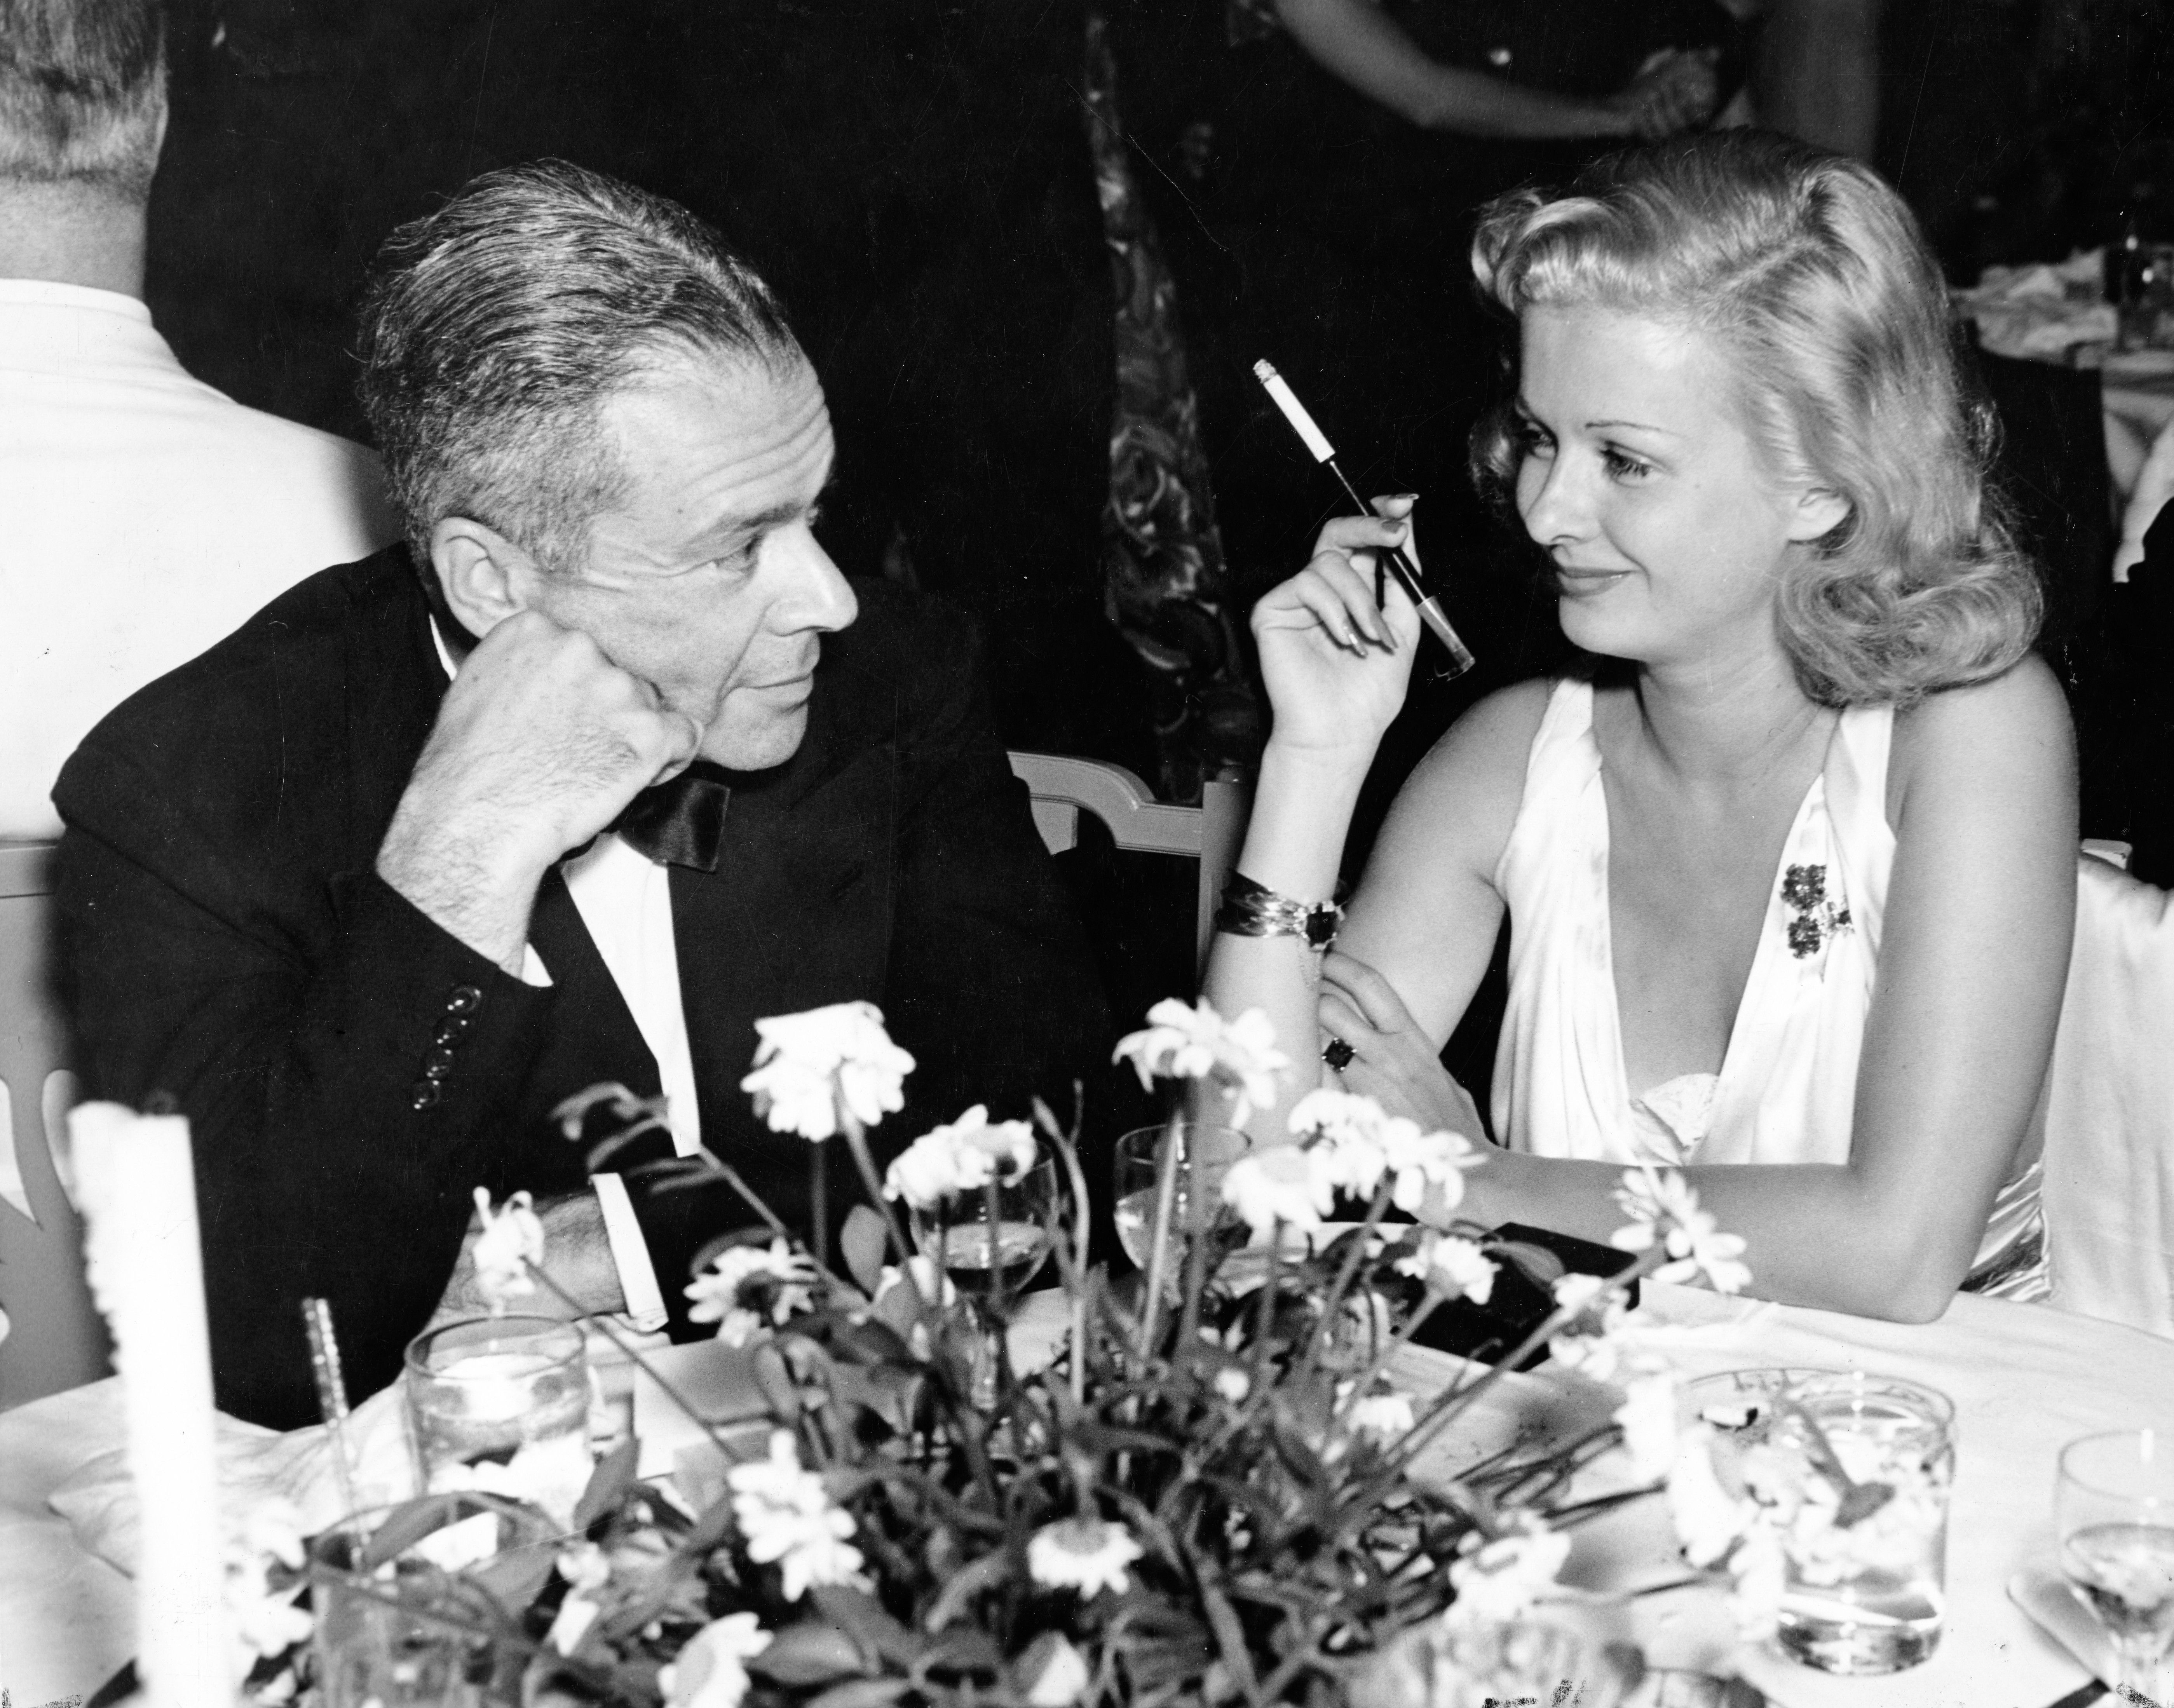 Mayfair Club 1938 Beverly Wilshire Hotel Bh Producer Walter Wanger With Joan Bennett Photo From Marc Wanamaker Bwhist Joan Bennett Bw Photo Wilshire Hotel